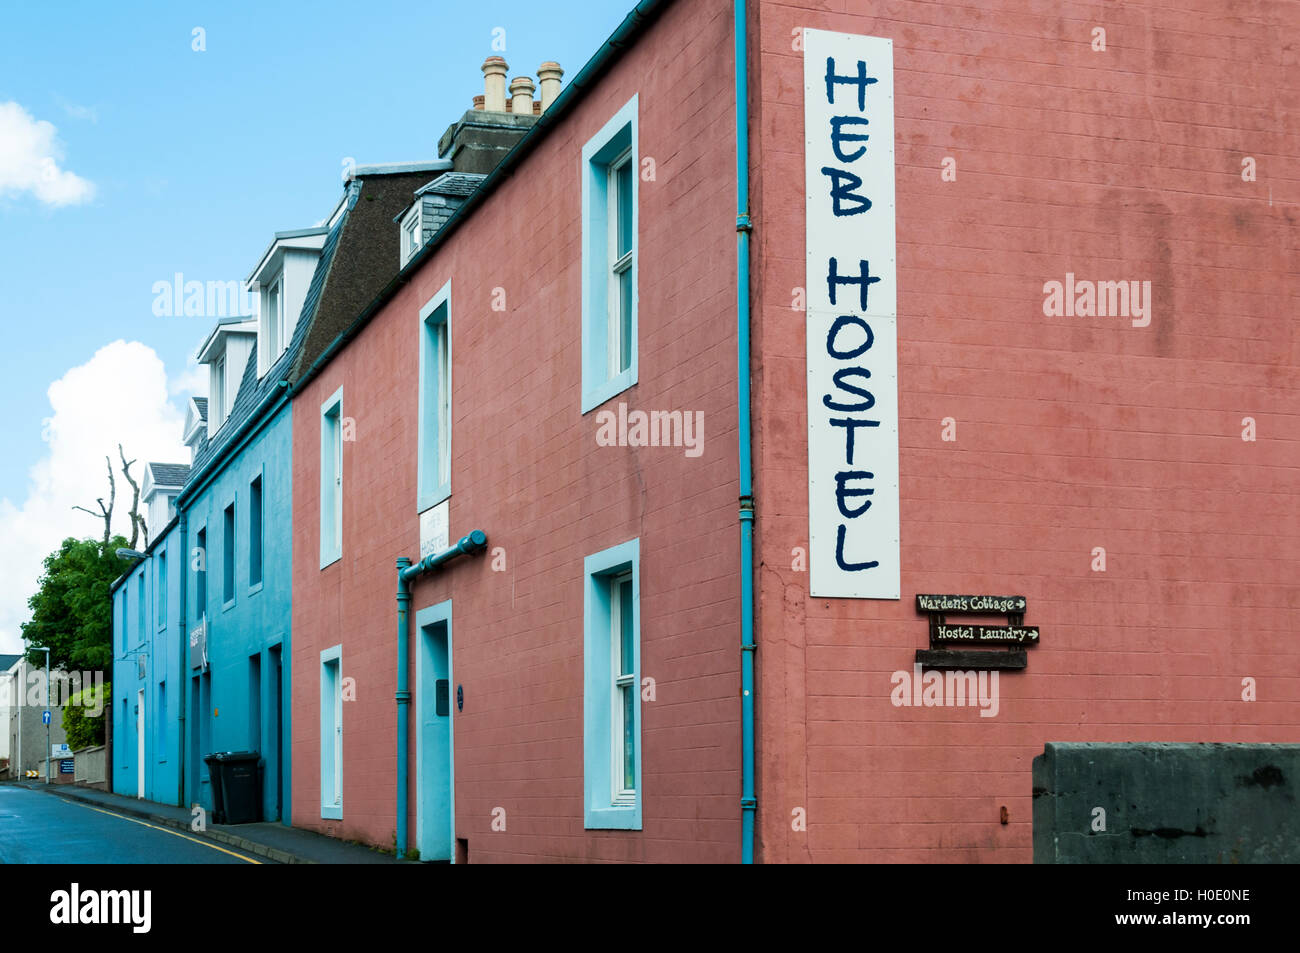 Heb Hostel in Stornoway is an independent backpackers' hostel. - Stock Image